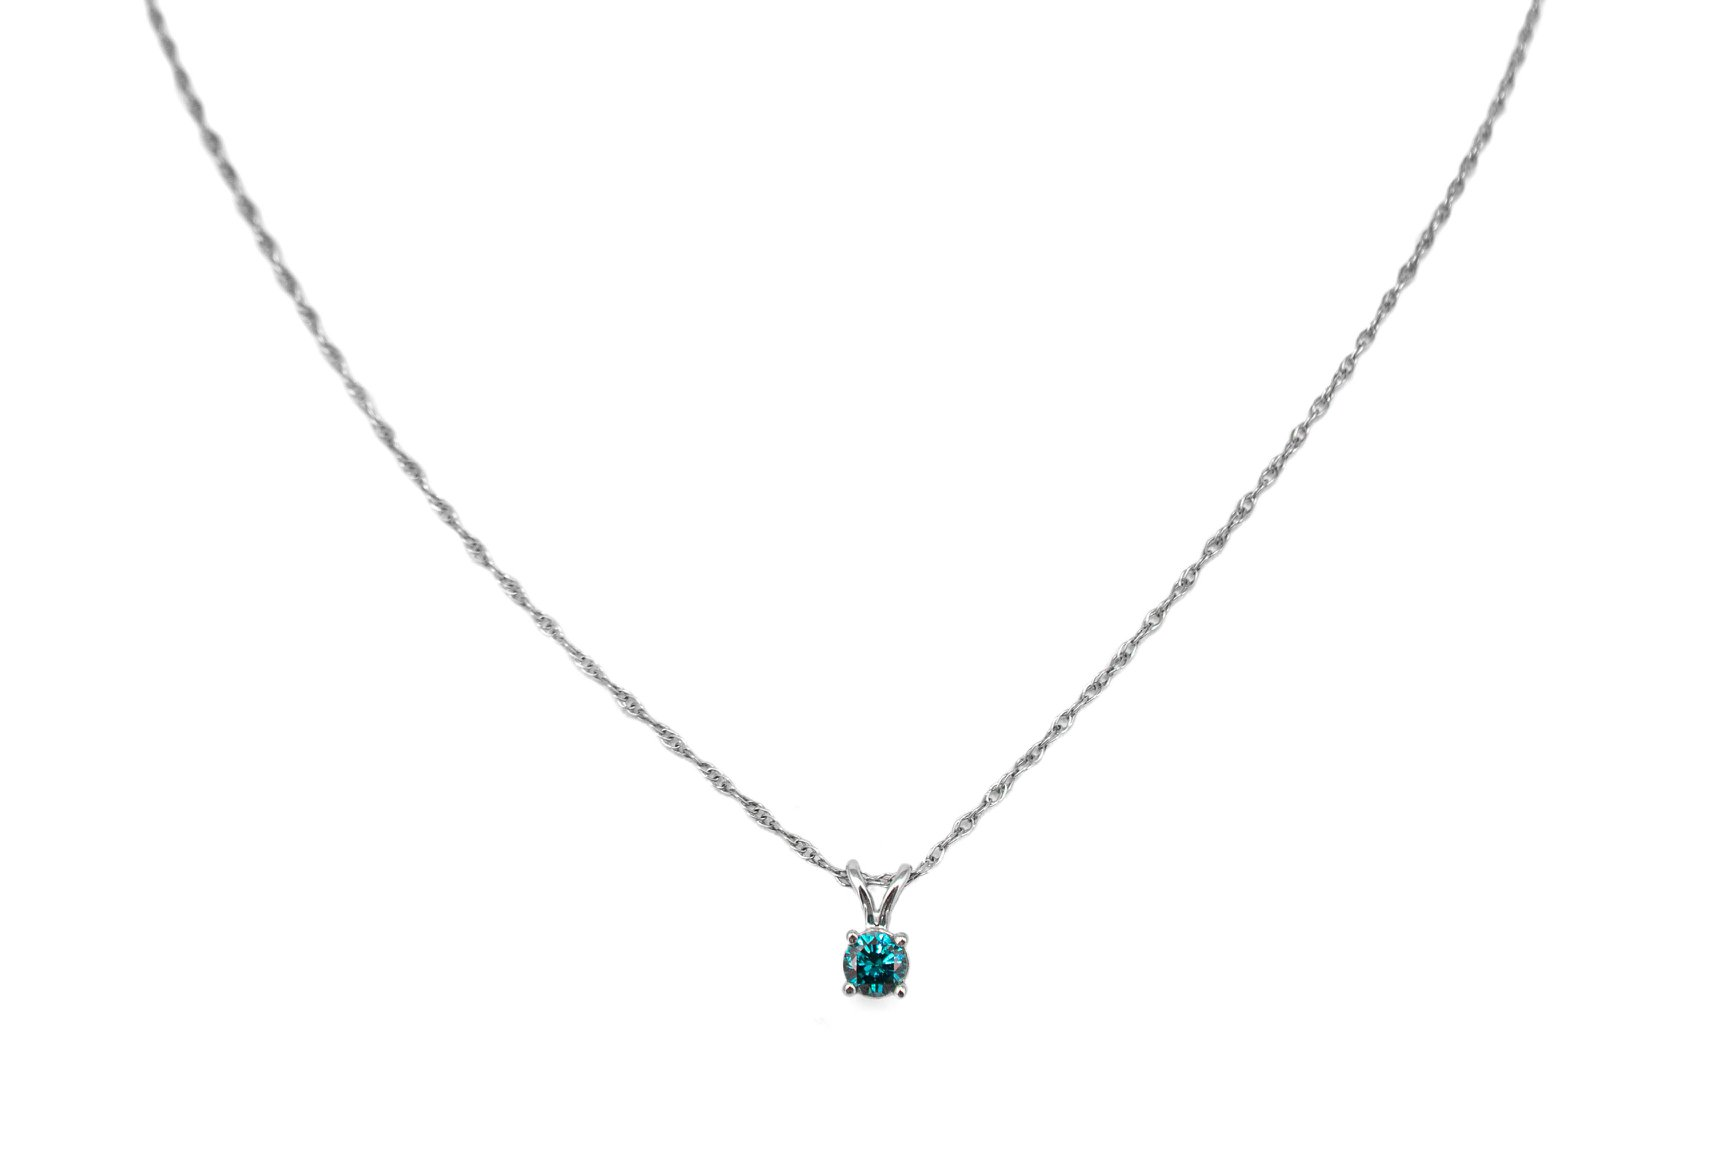 Necklaces atwood jewelers salem